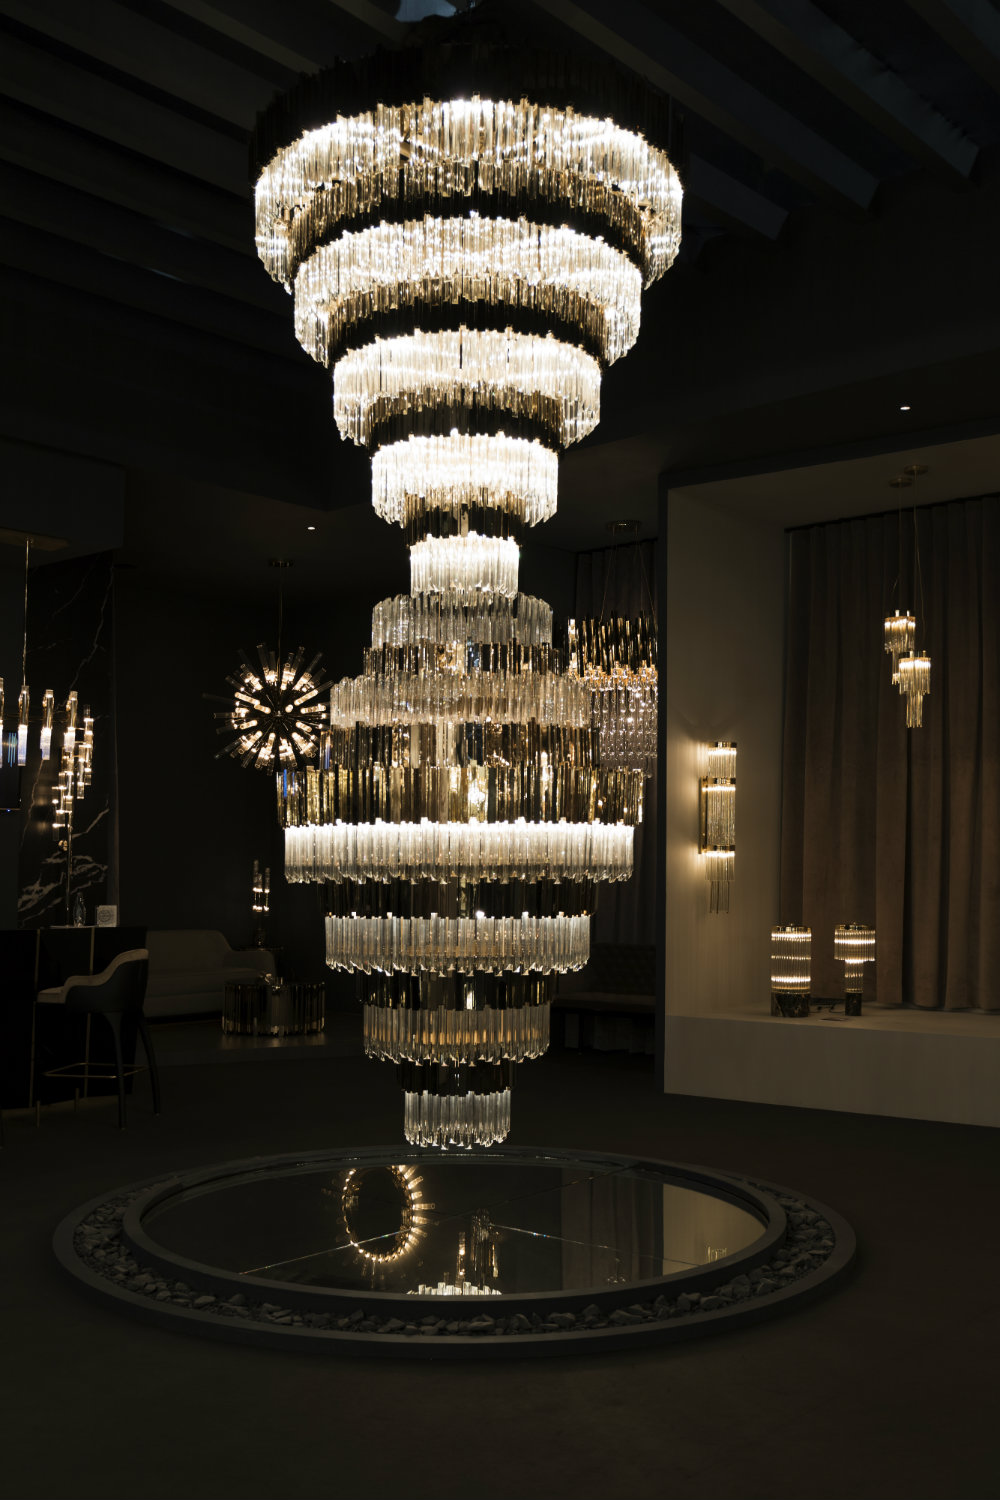 Highlights Of The First Day Of iSaloni 2019 02 highlights of the first day at isaloni Highlights Of The First Day At iSaloni 2019 Highlights Of The First Day Of iSaloni 2019 02